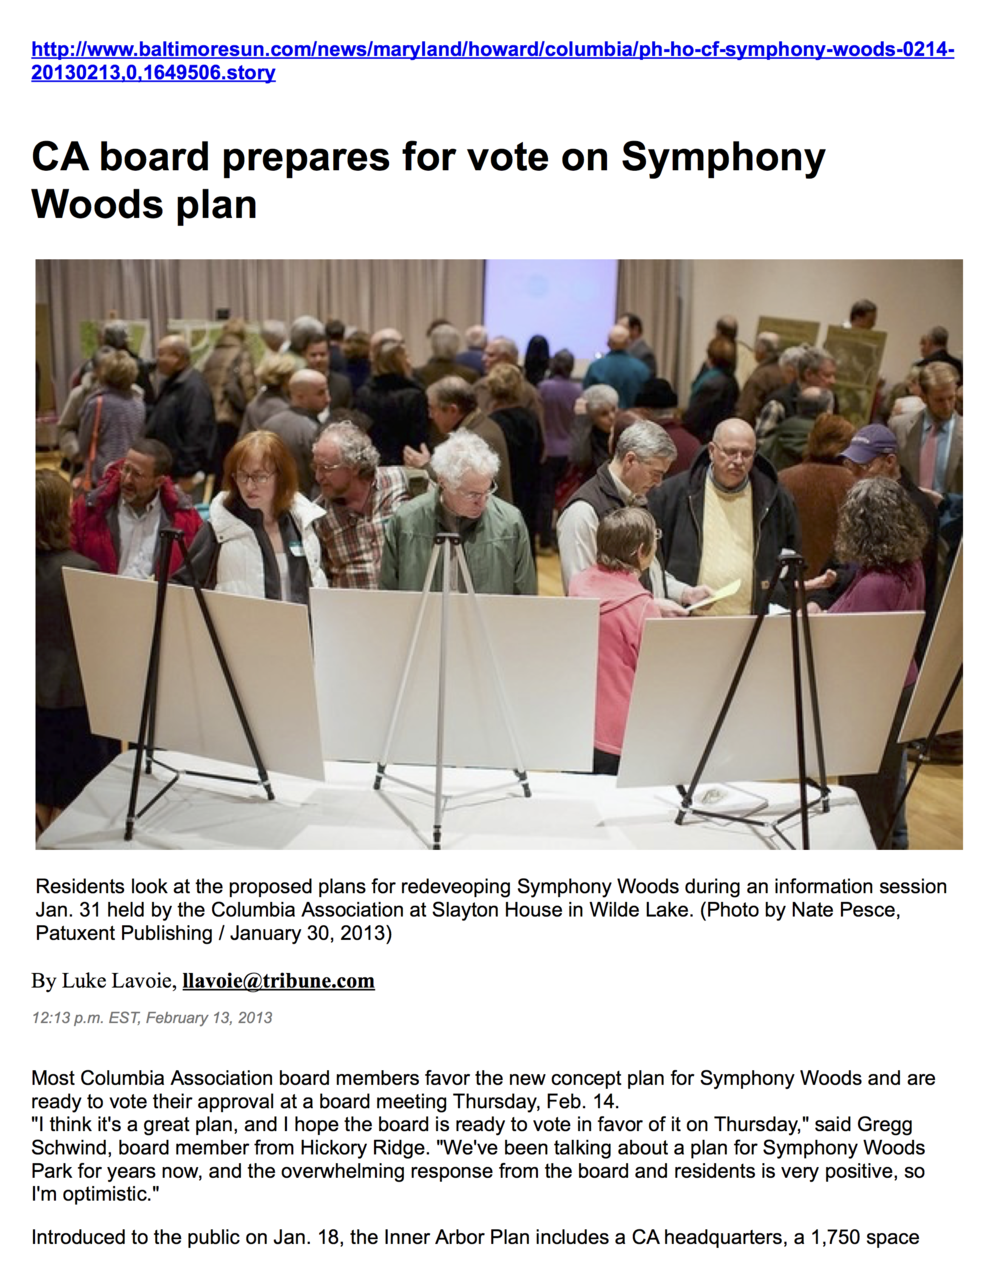 CA board prepares for vote on Symphony Woods plan (dragged).png